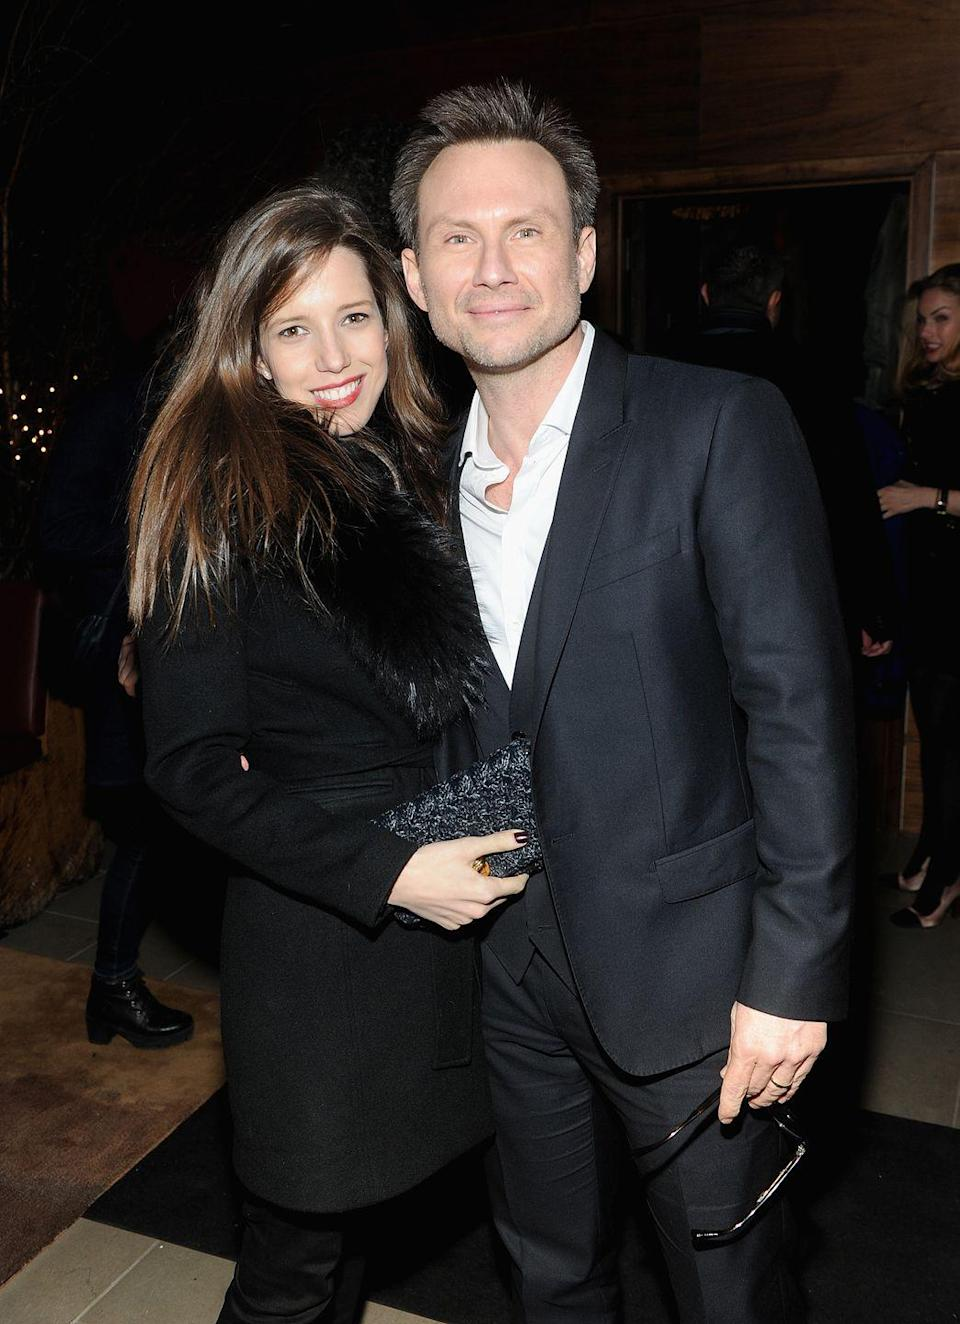 <p><strong>Age gap: </strong>18 years </p><p>After meeting on Florida's Little Palm Island, Christian Slater and his wife, Brittany Lopez, tied the knot in a spontaneous ceremony at the Miami Courthouse in 2013 after a few years of dating. The couple was just getting their marriage certificate, and reportedly decided they couldn't wait any longer to make it official.</p>